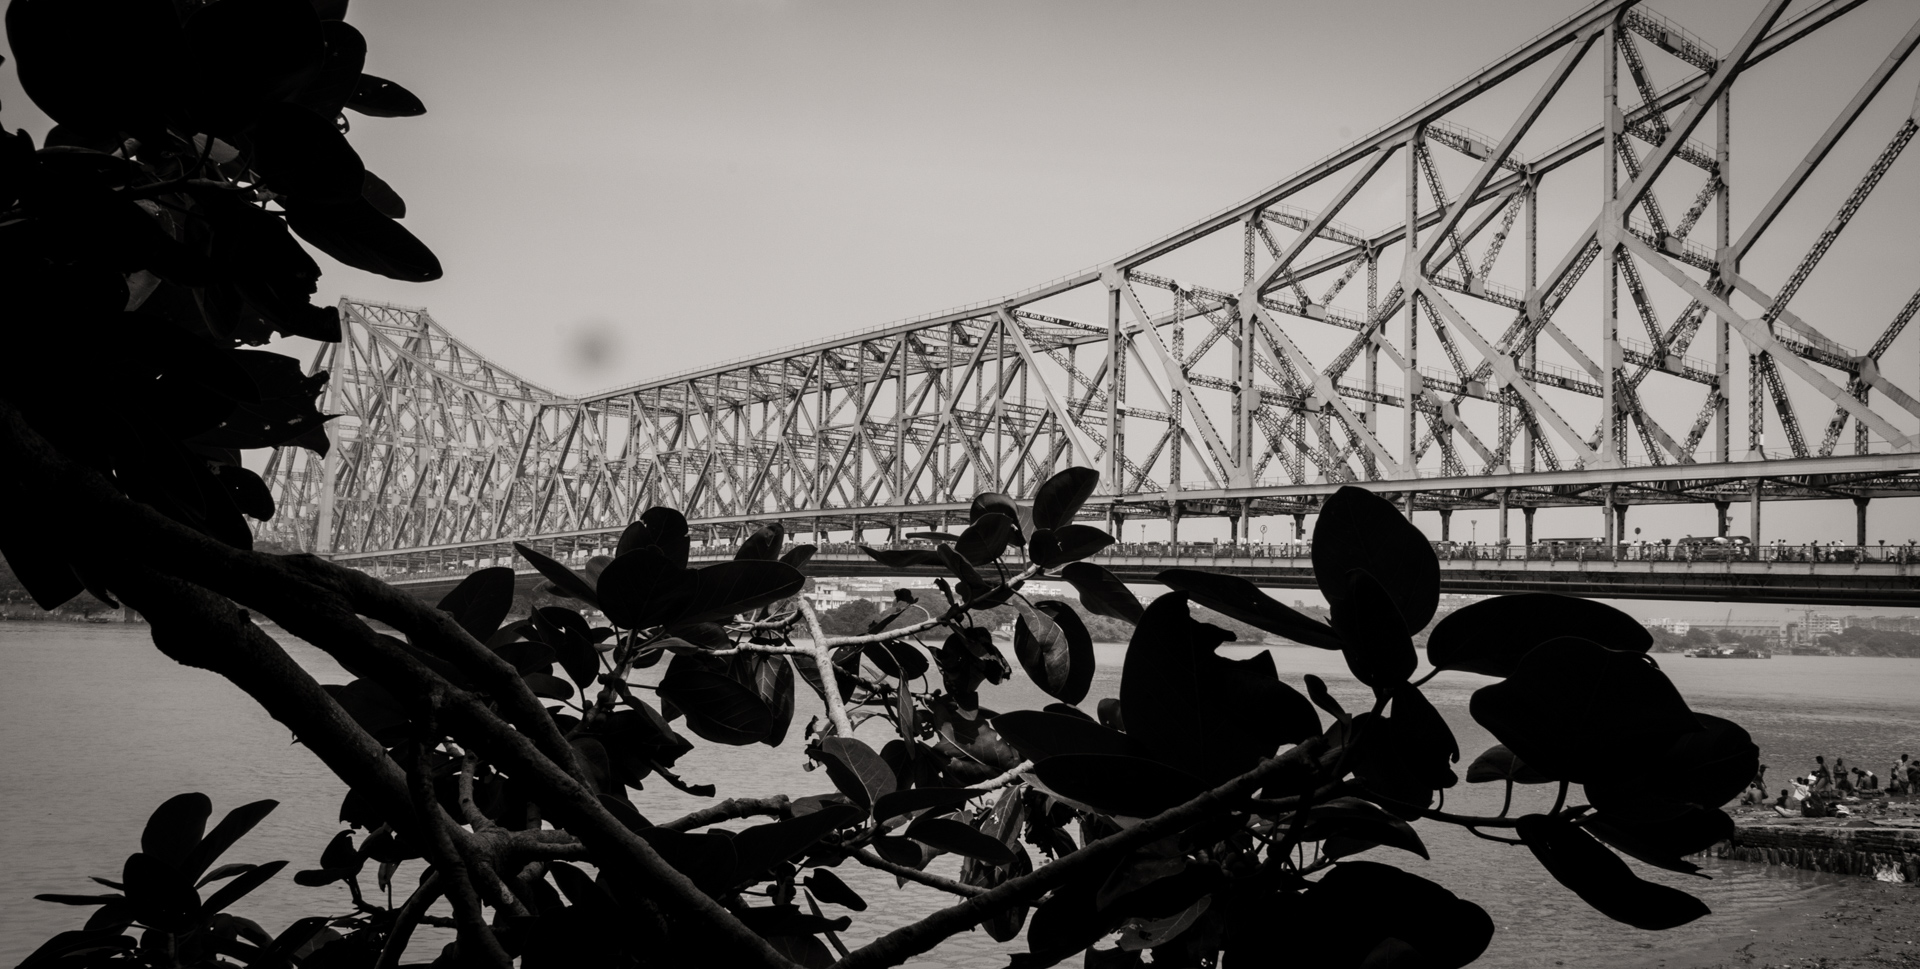 famed Howrah Bridge crosses the Hooghly River - Kolkata, India